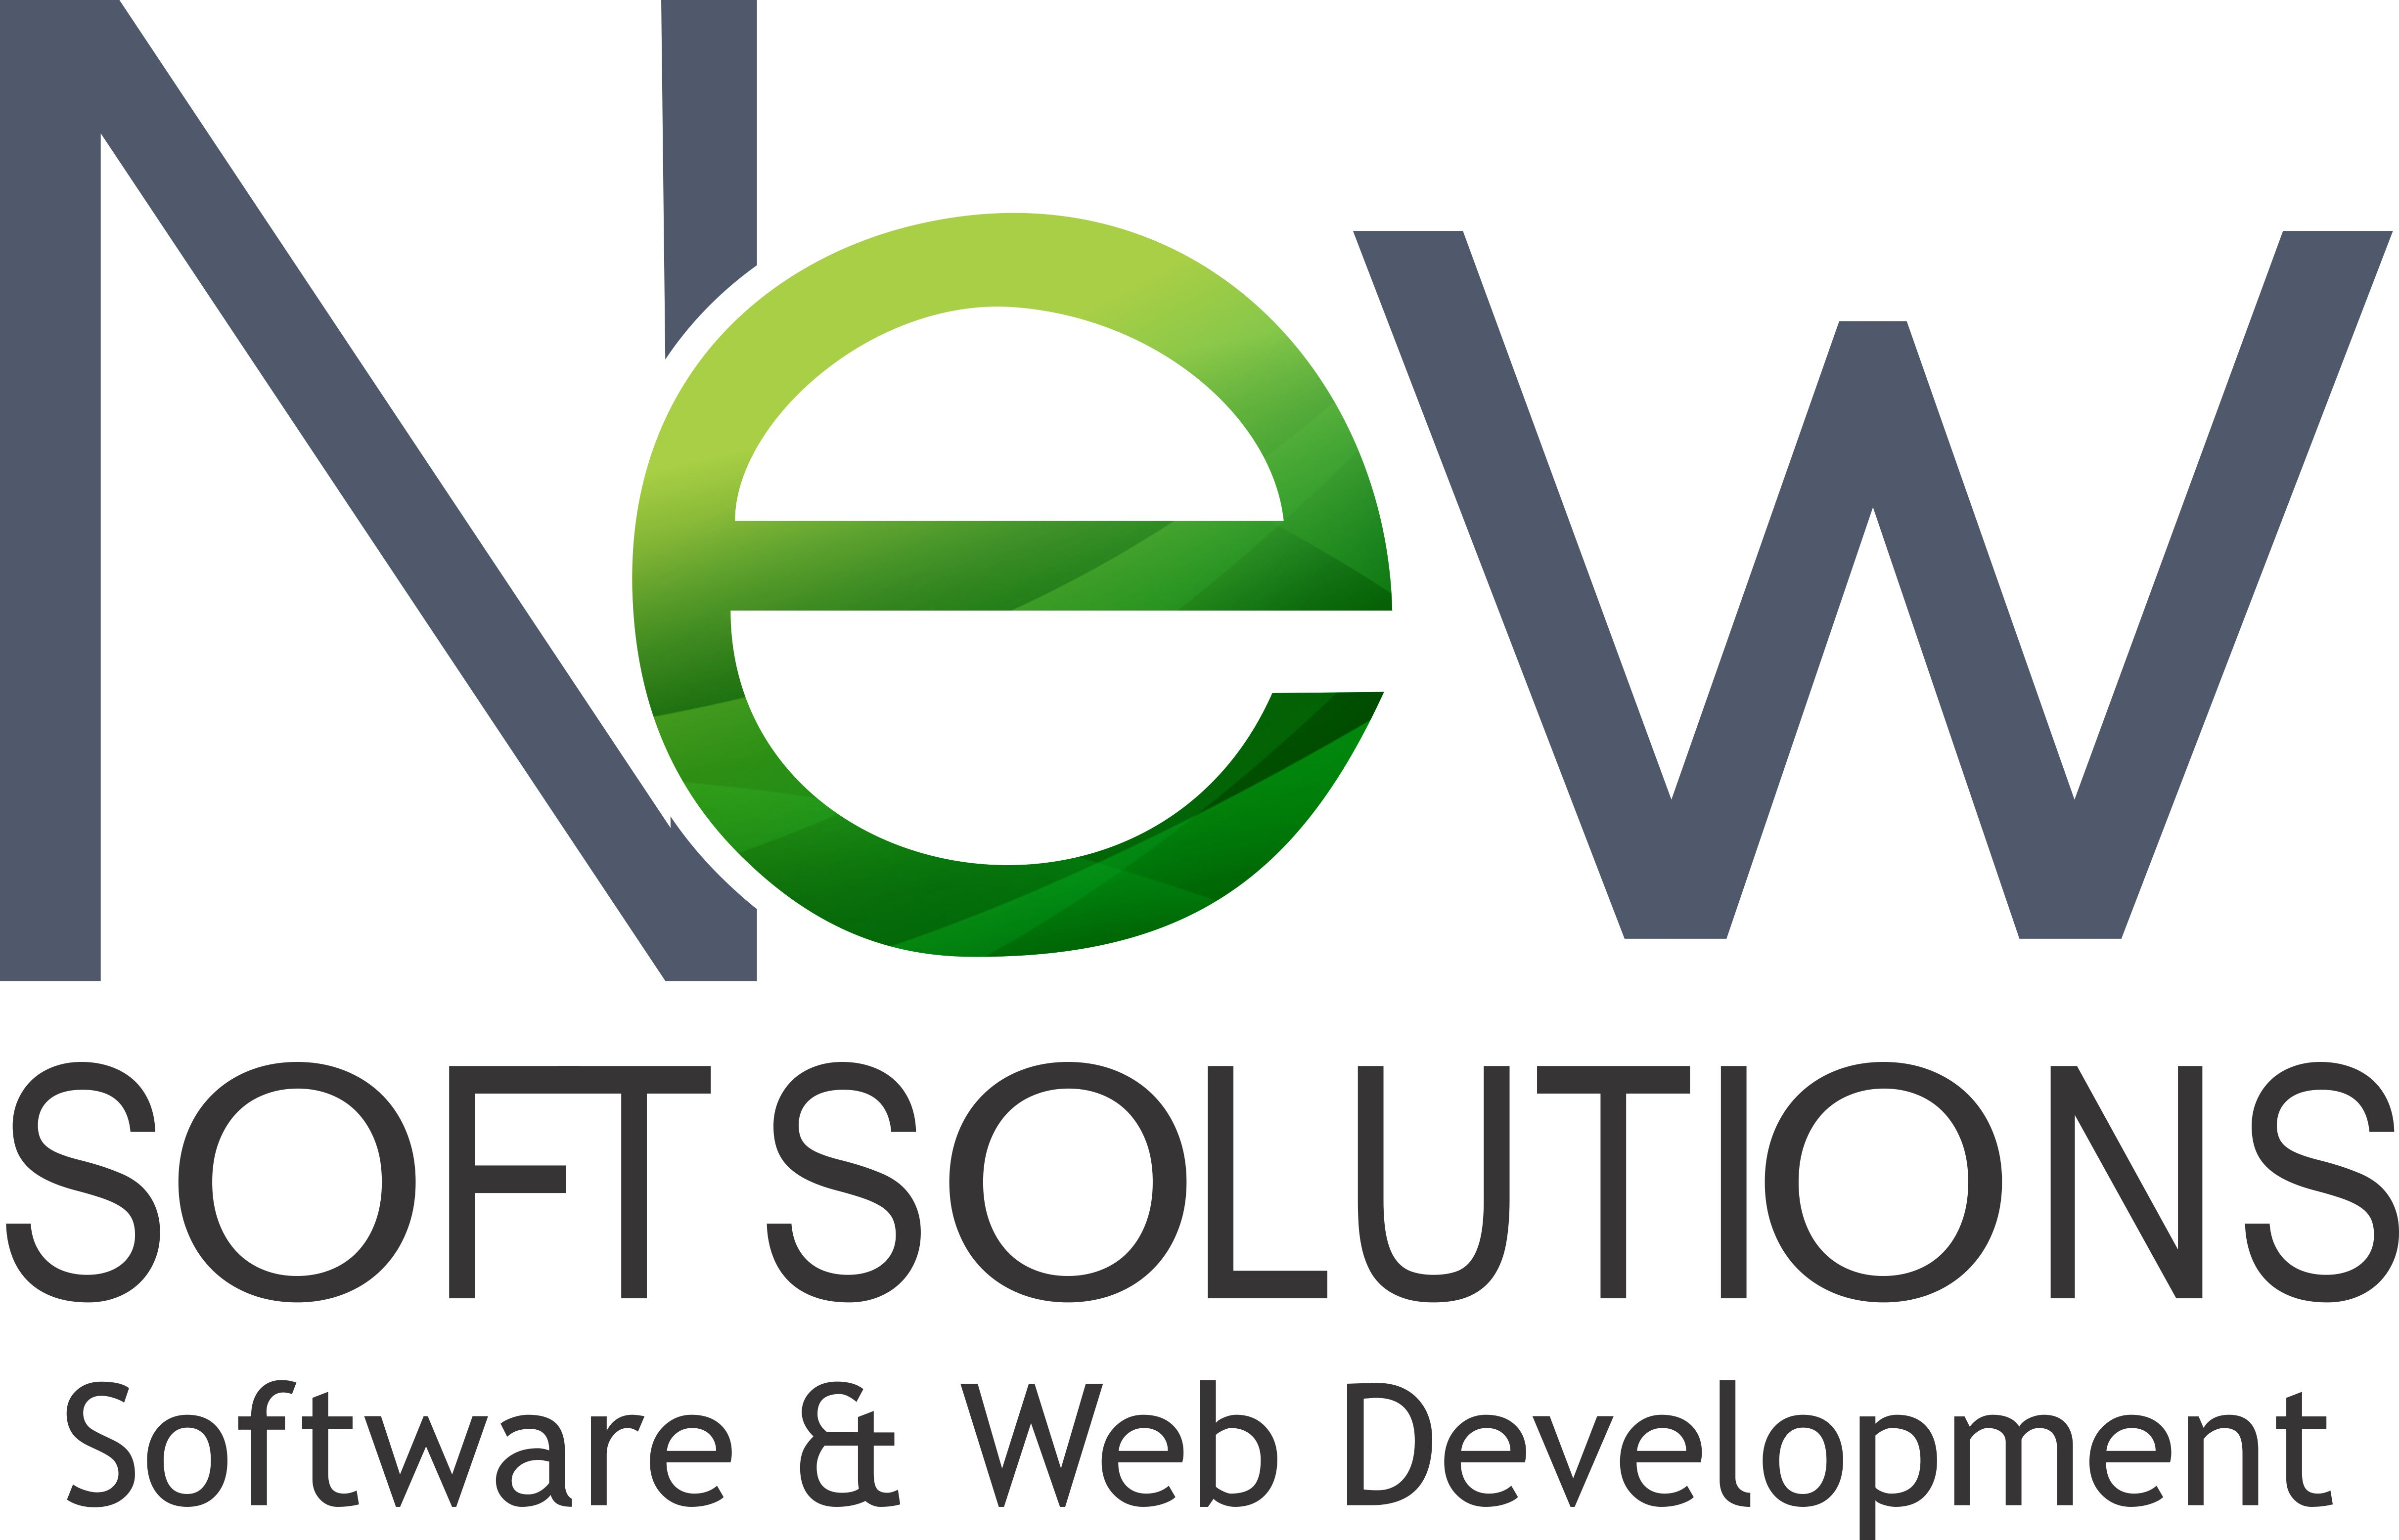 NewSoft Soutions